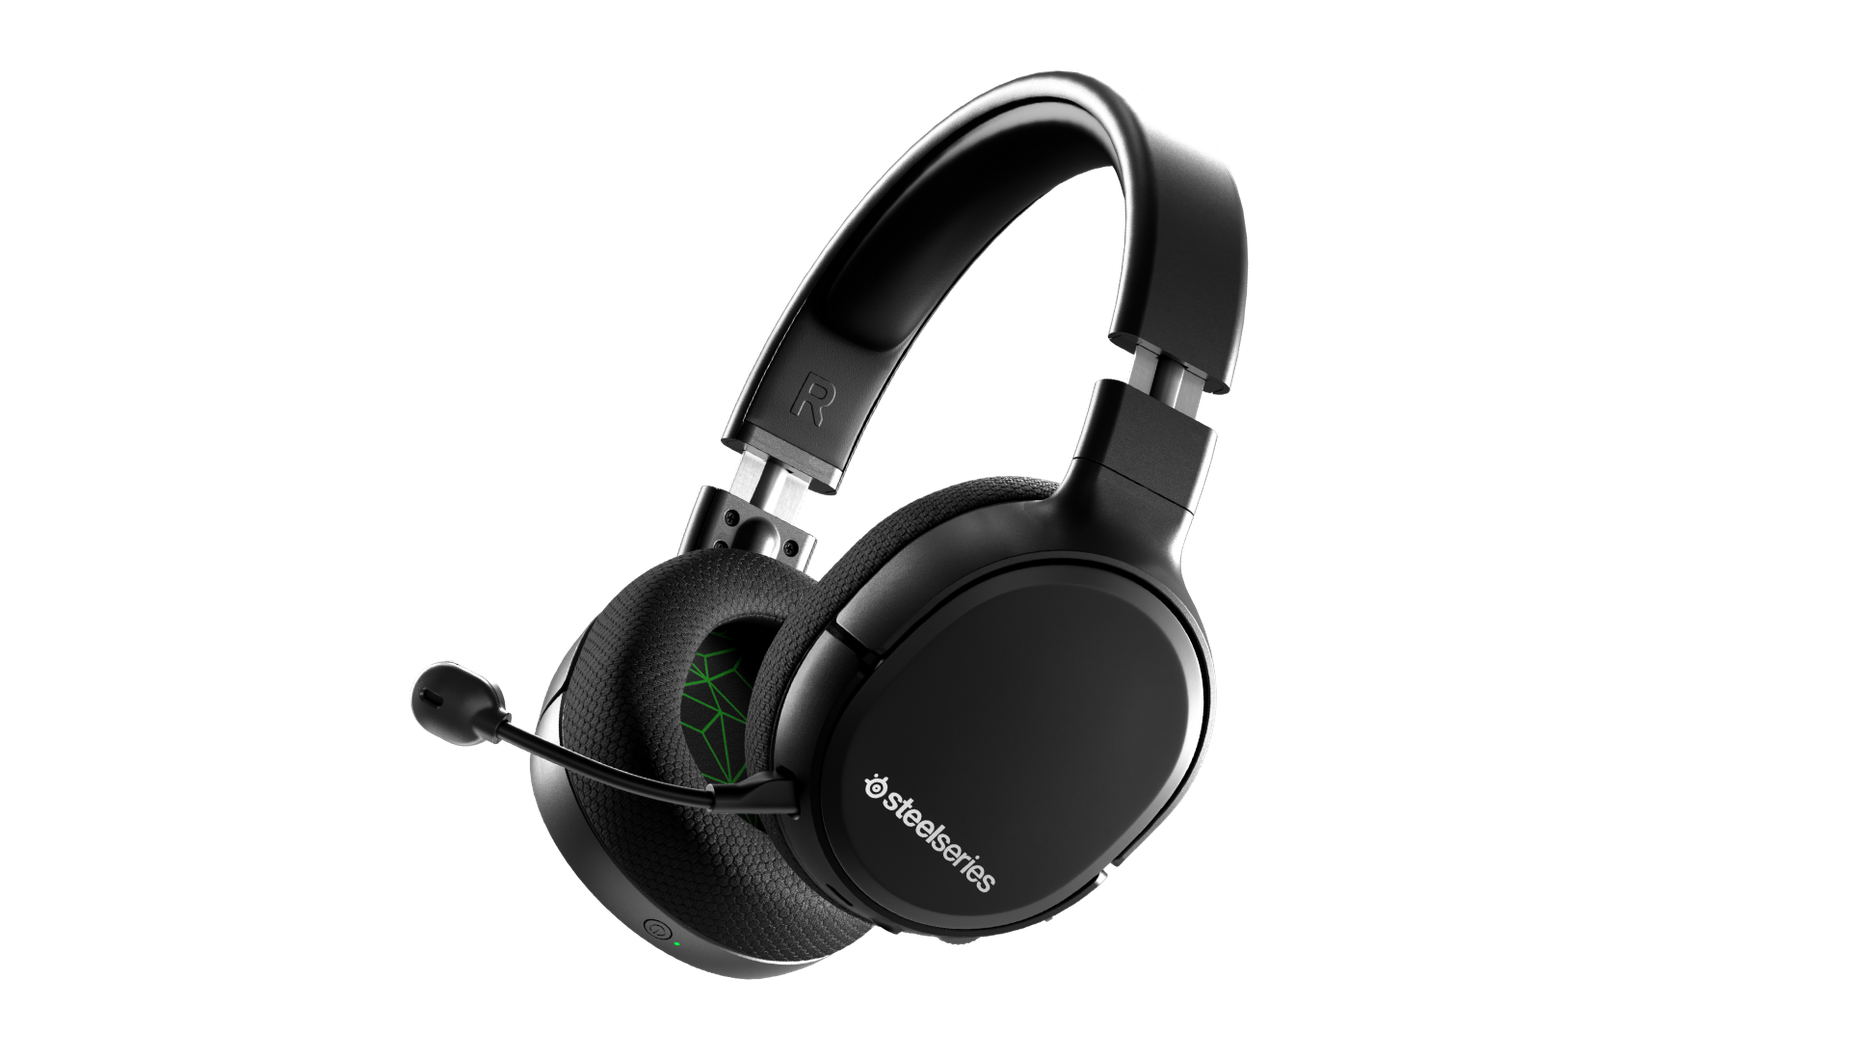 Vue de biais du casque audio de gaming Arctis 1 Wireless pour Xbox avec le micro attaché